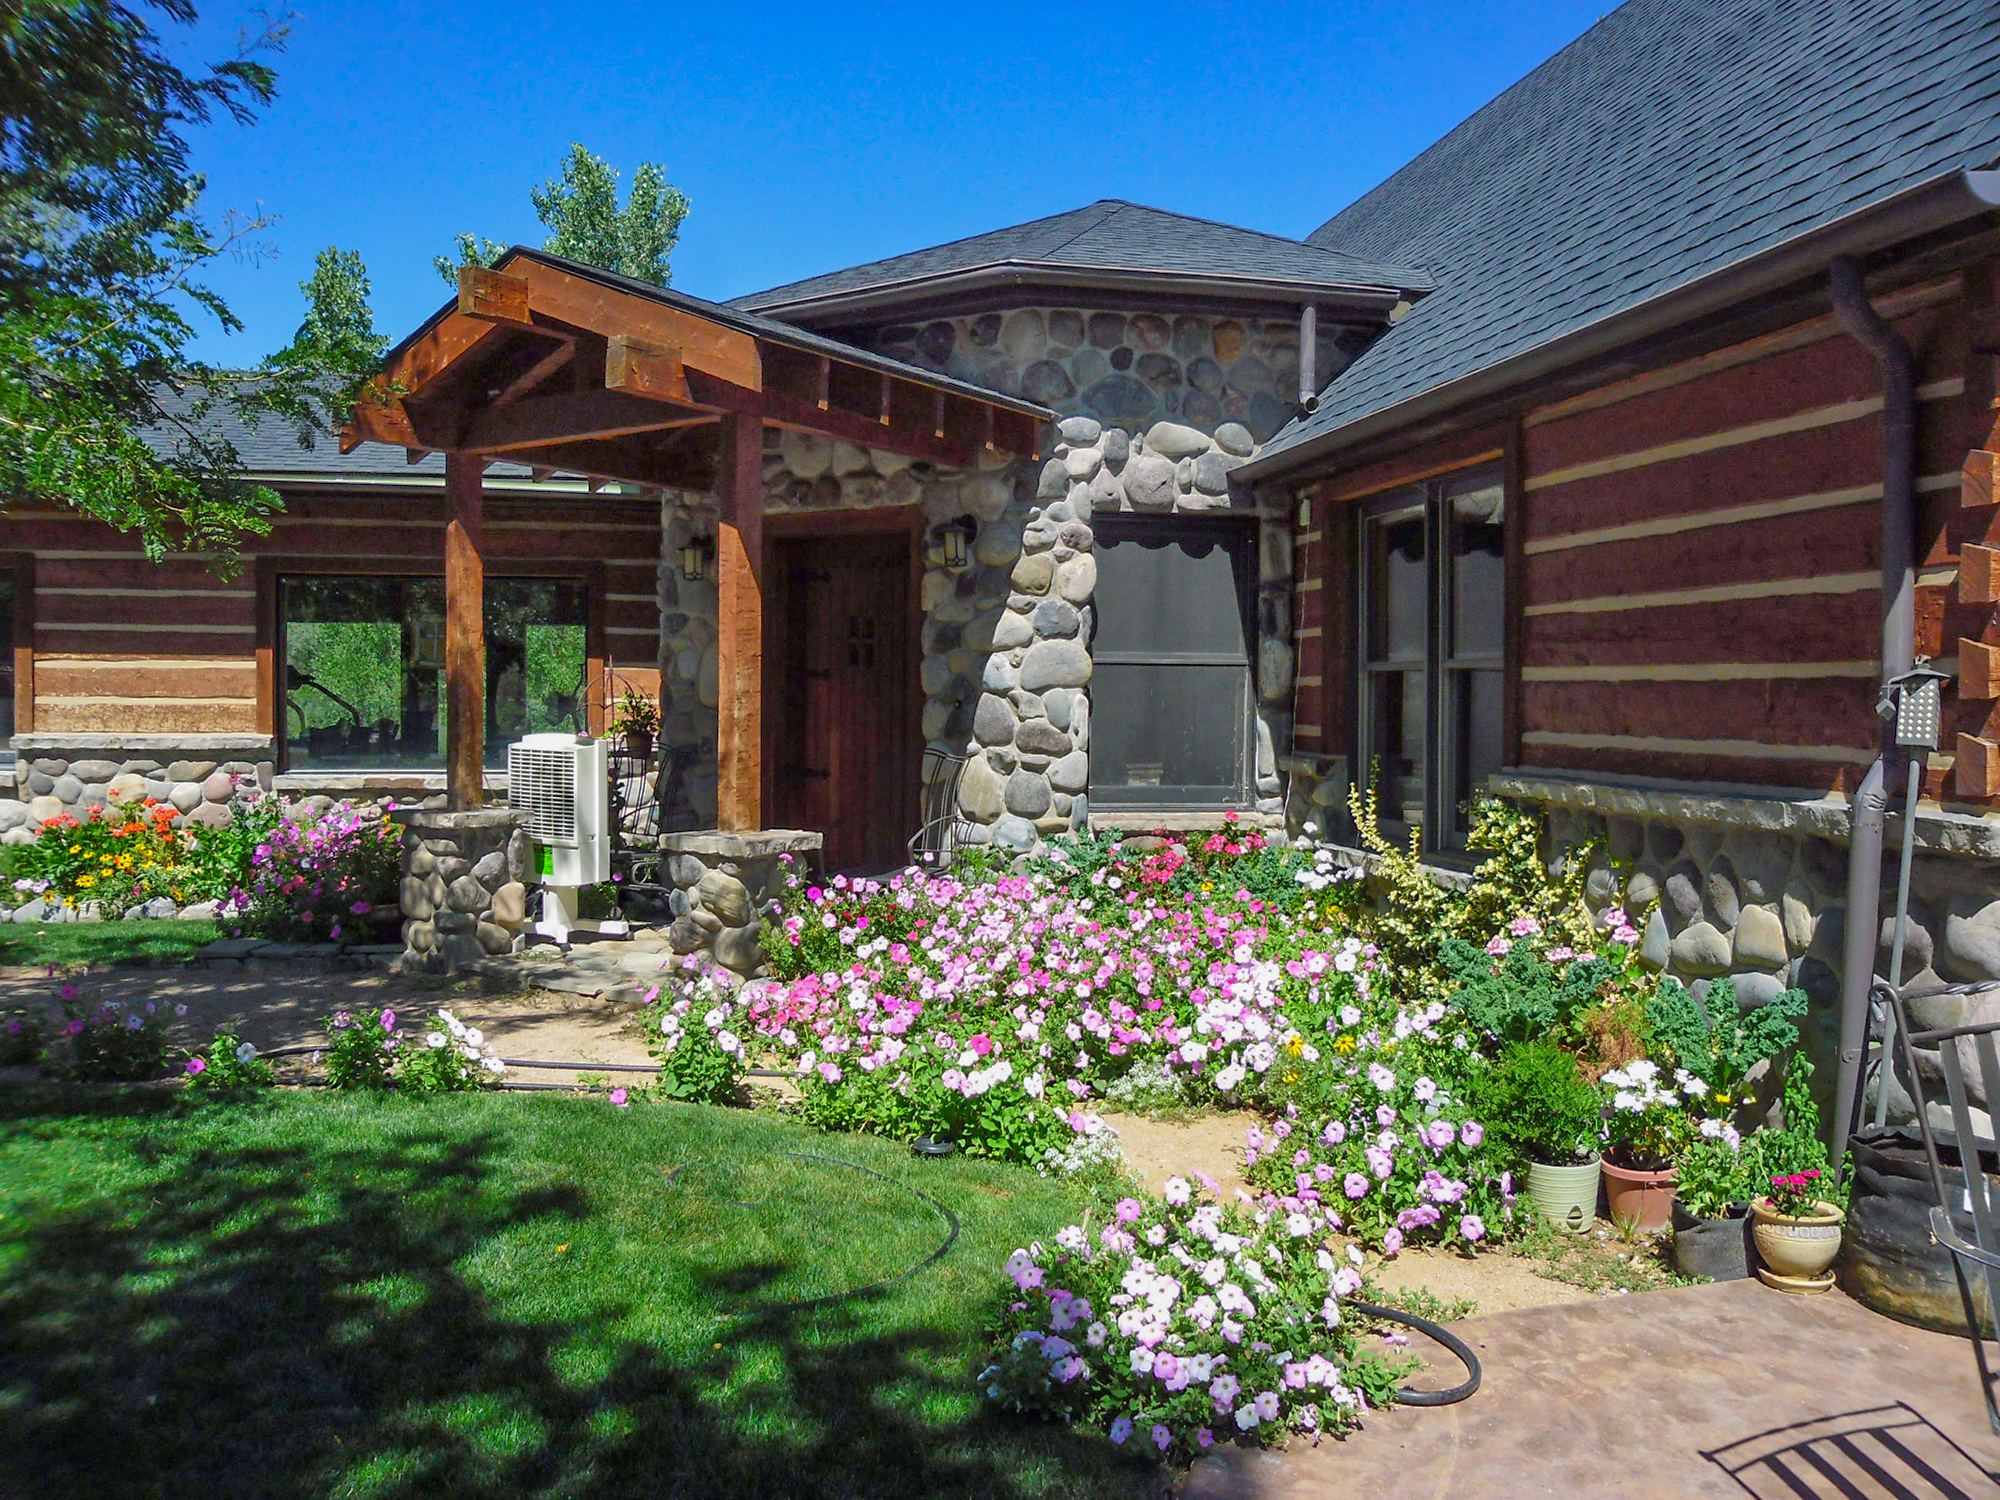 log and stone home with lots of flowers in Montrose, Colorado